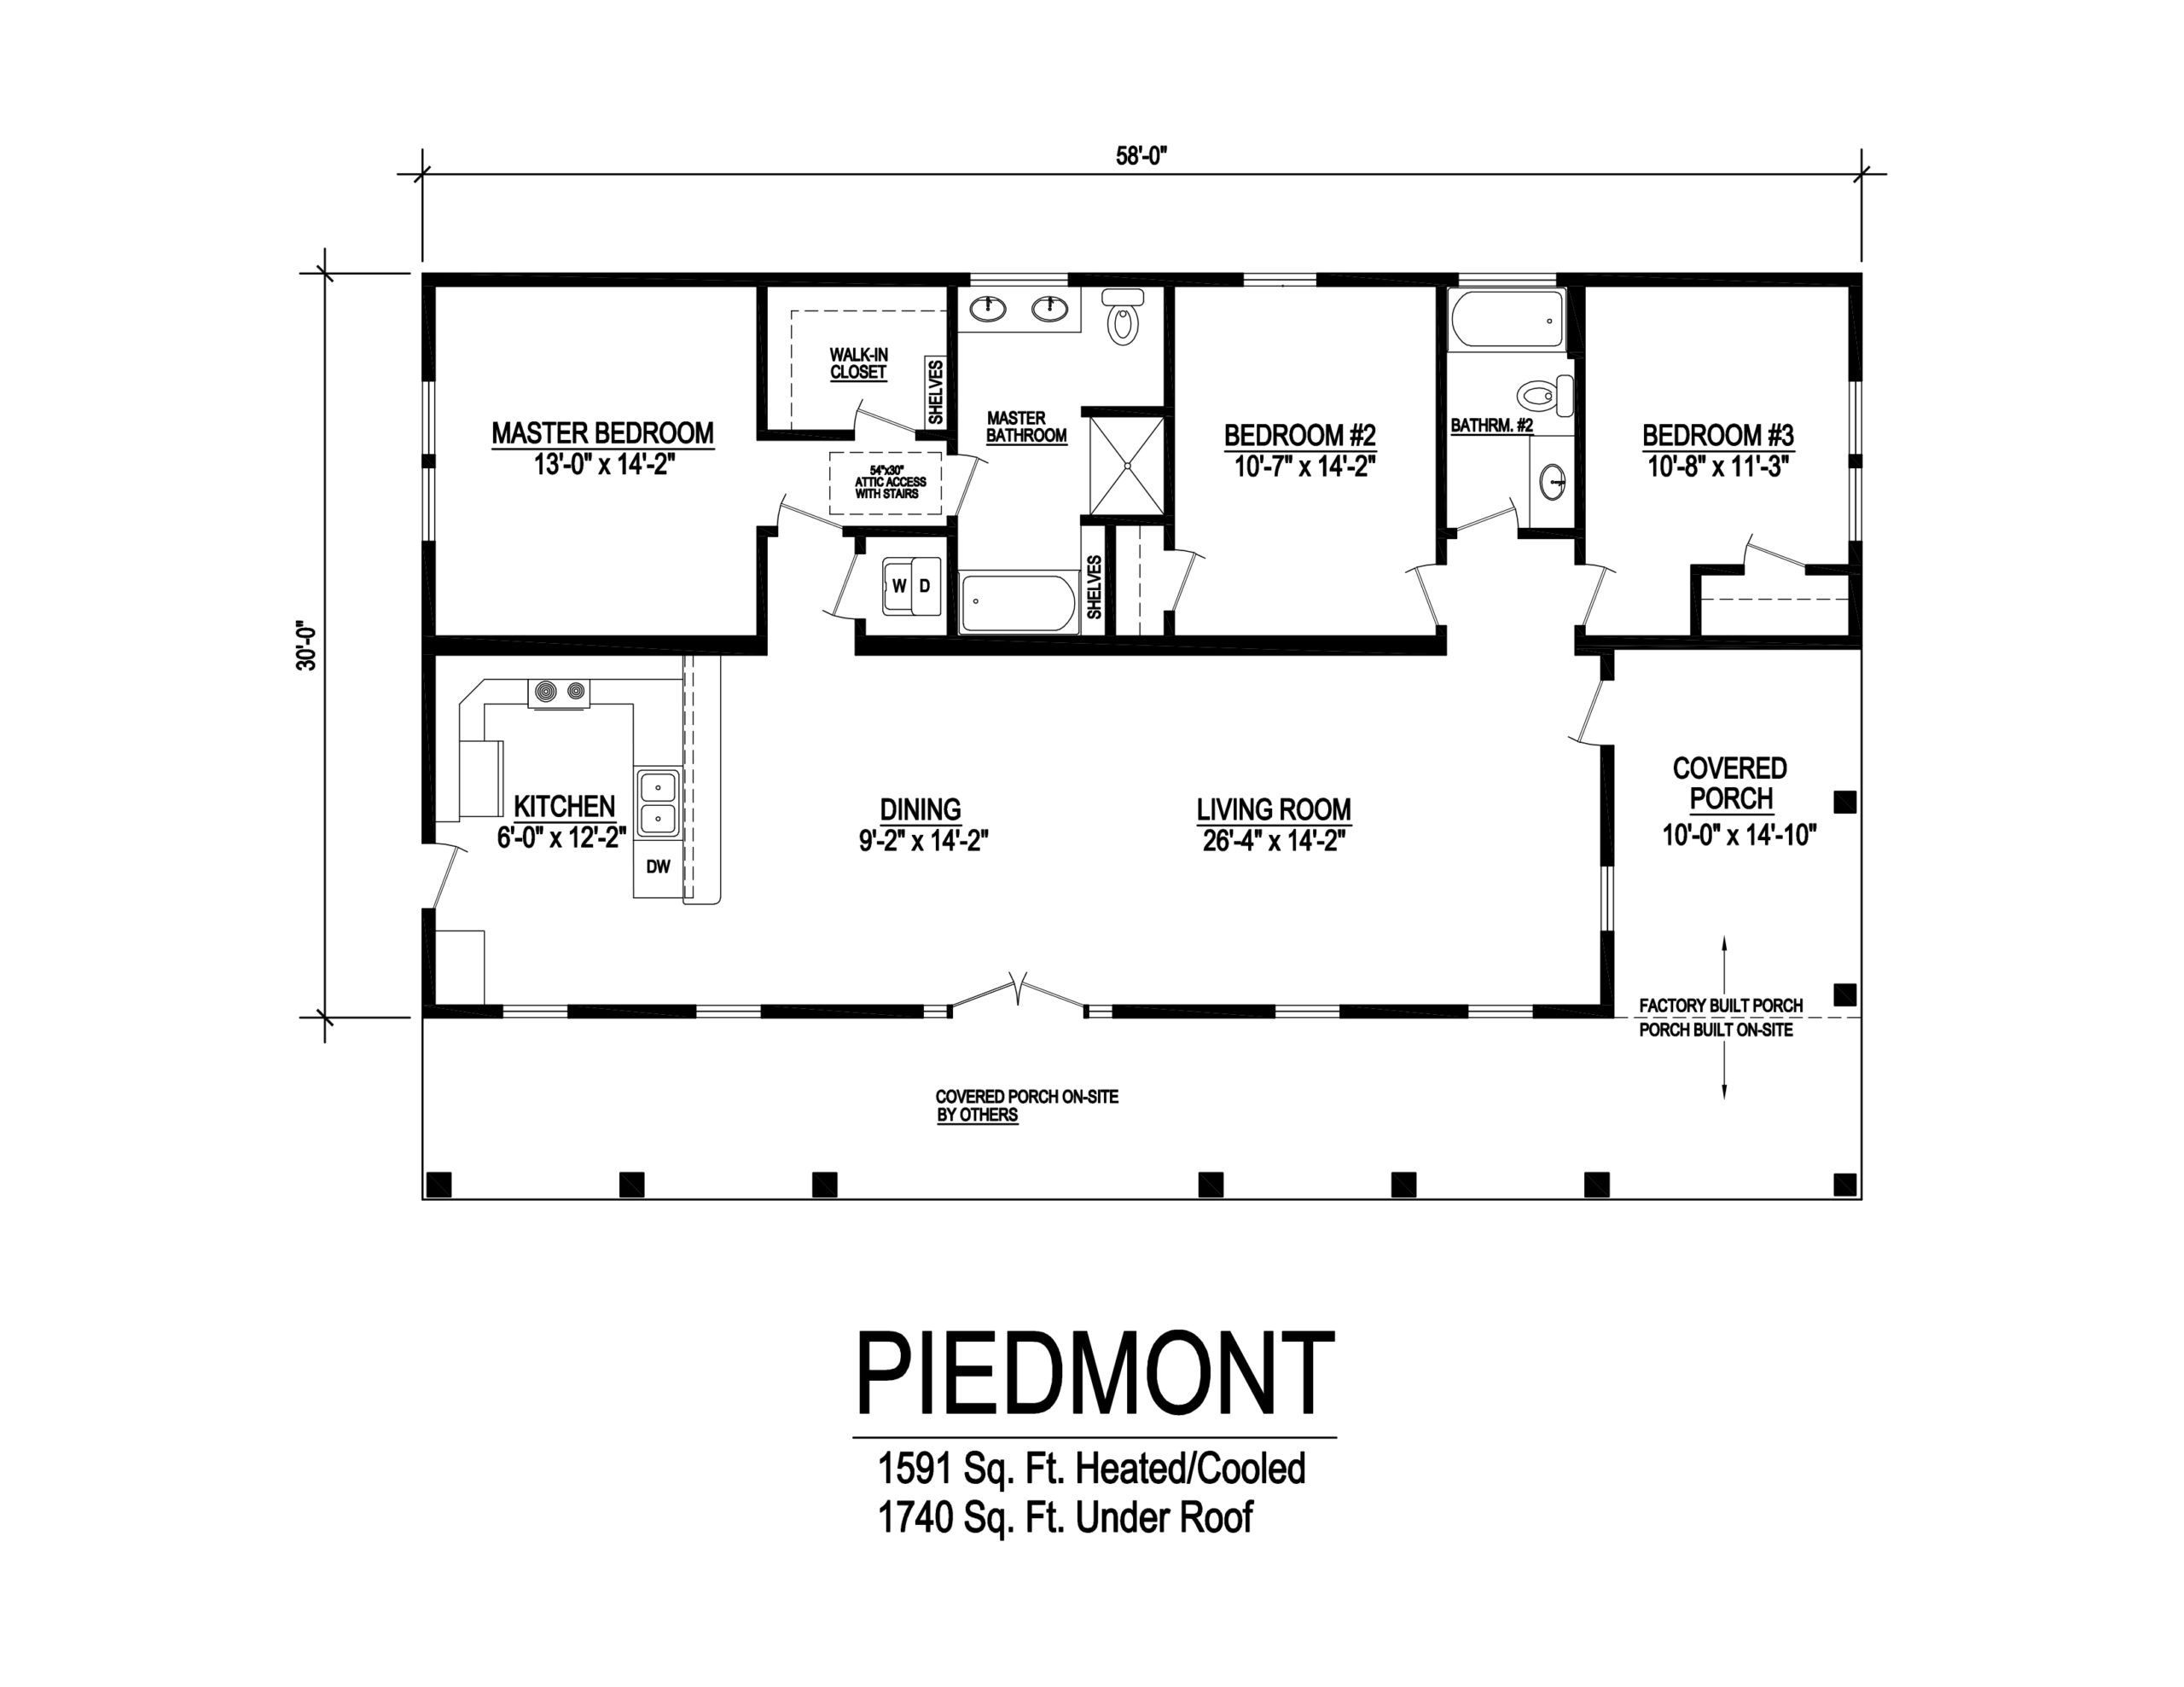 Piedmont Affinity Building Systems Llc Country Style House Plans Modular Home Floor Plans Cottage Floor Plans